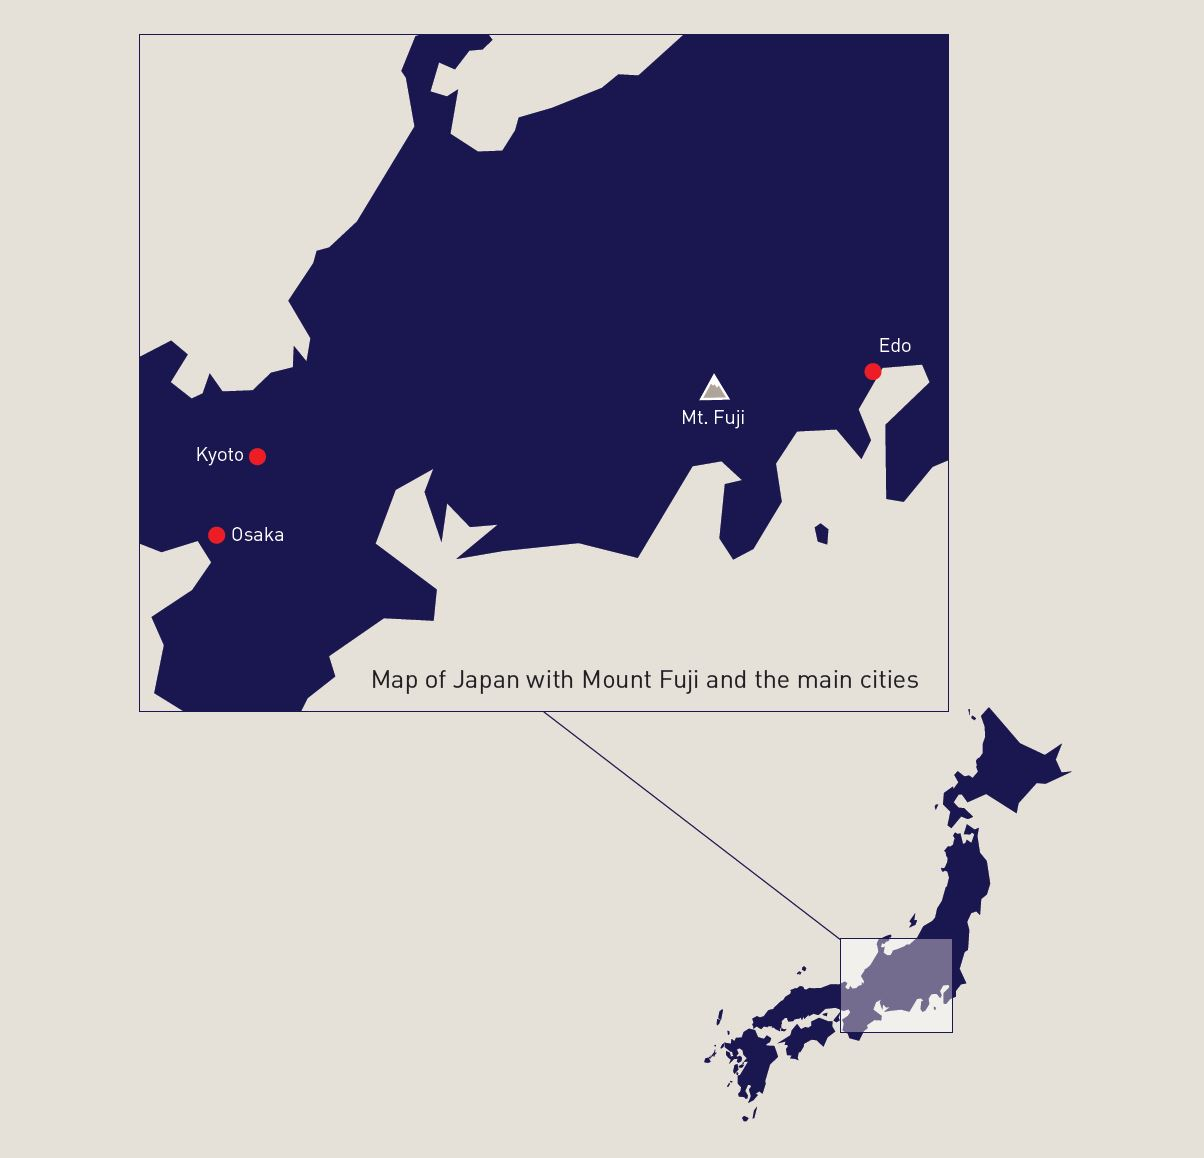 Map of Japan with detail of area including Mount Fuji, Kyoto, Osaka and Edo.